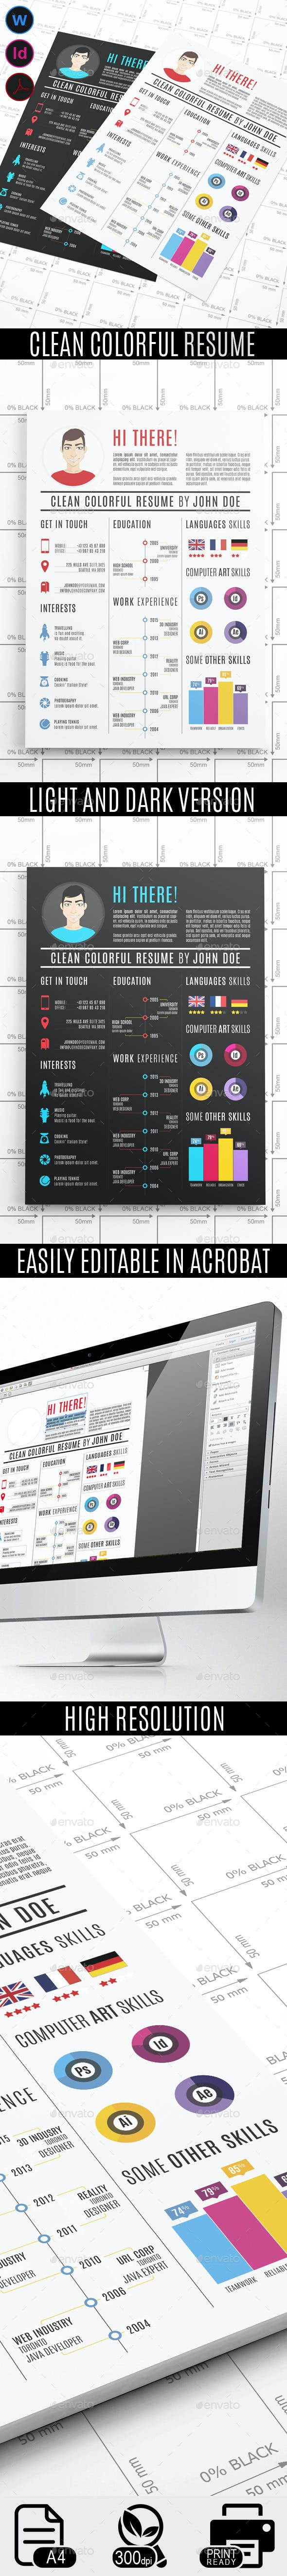 clean colorful resume by gfsolutions graphicriver